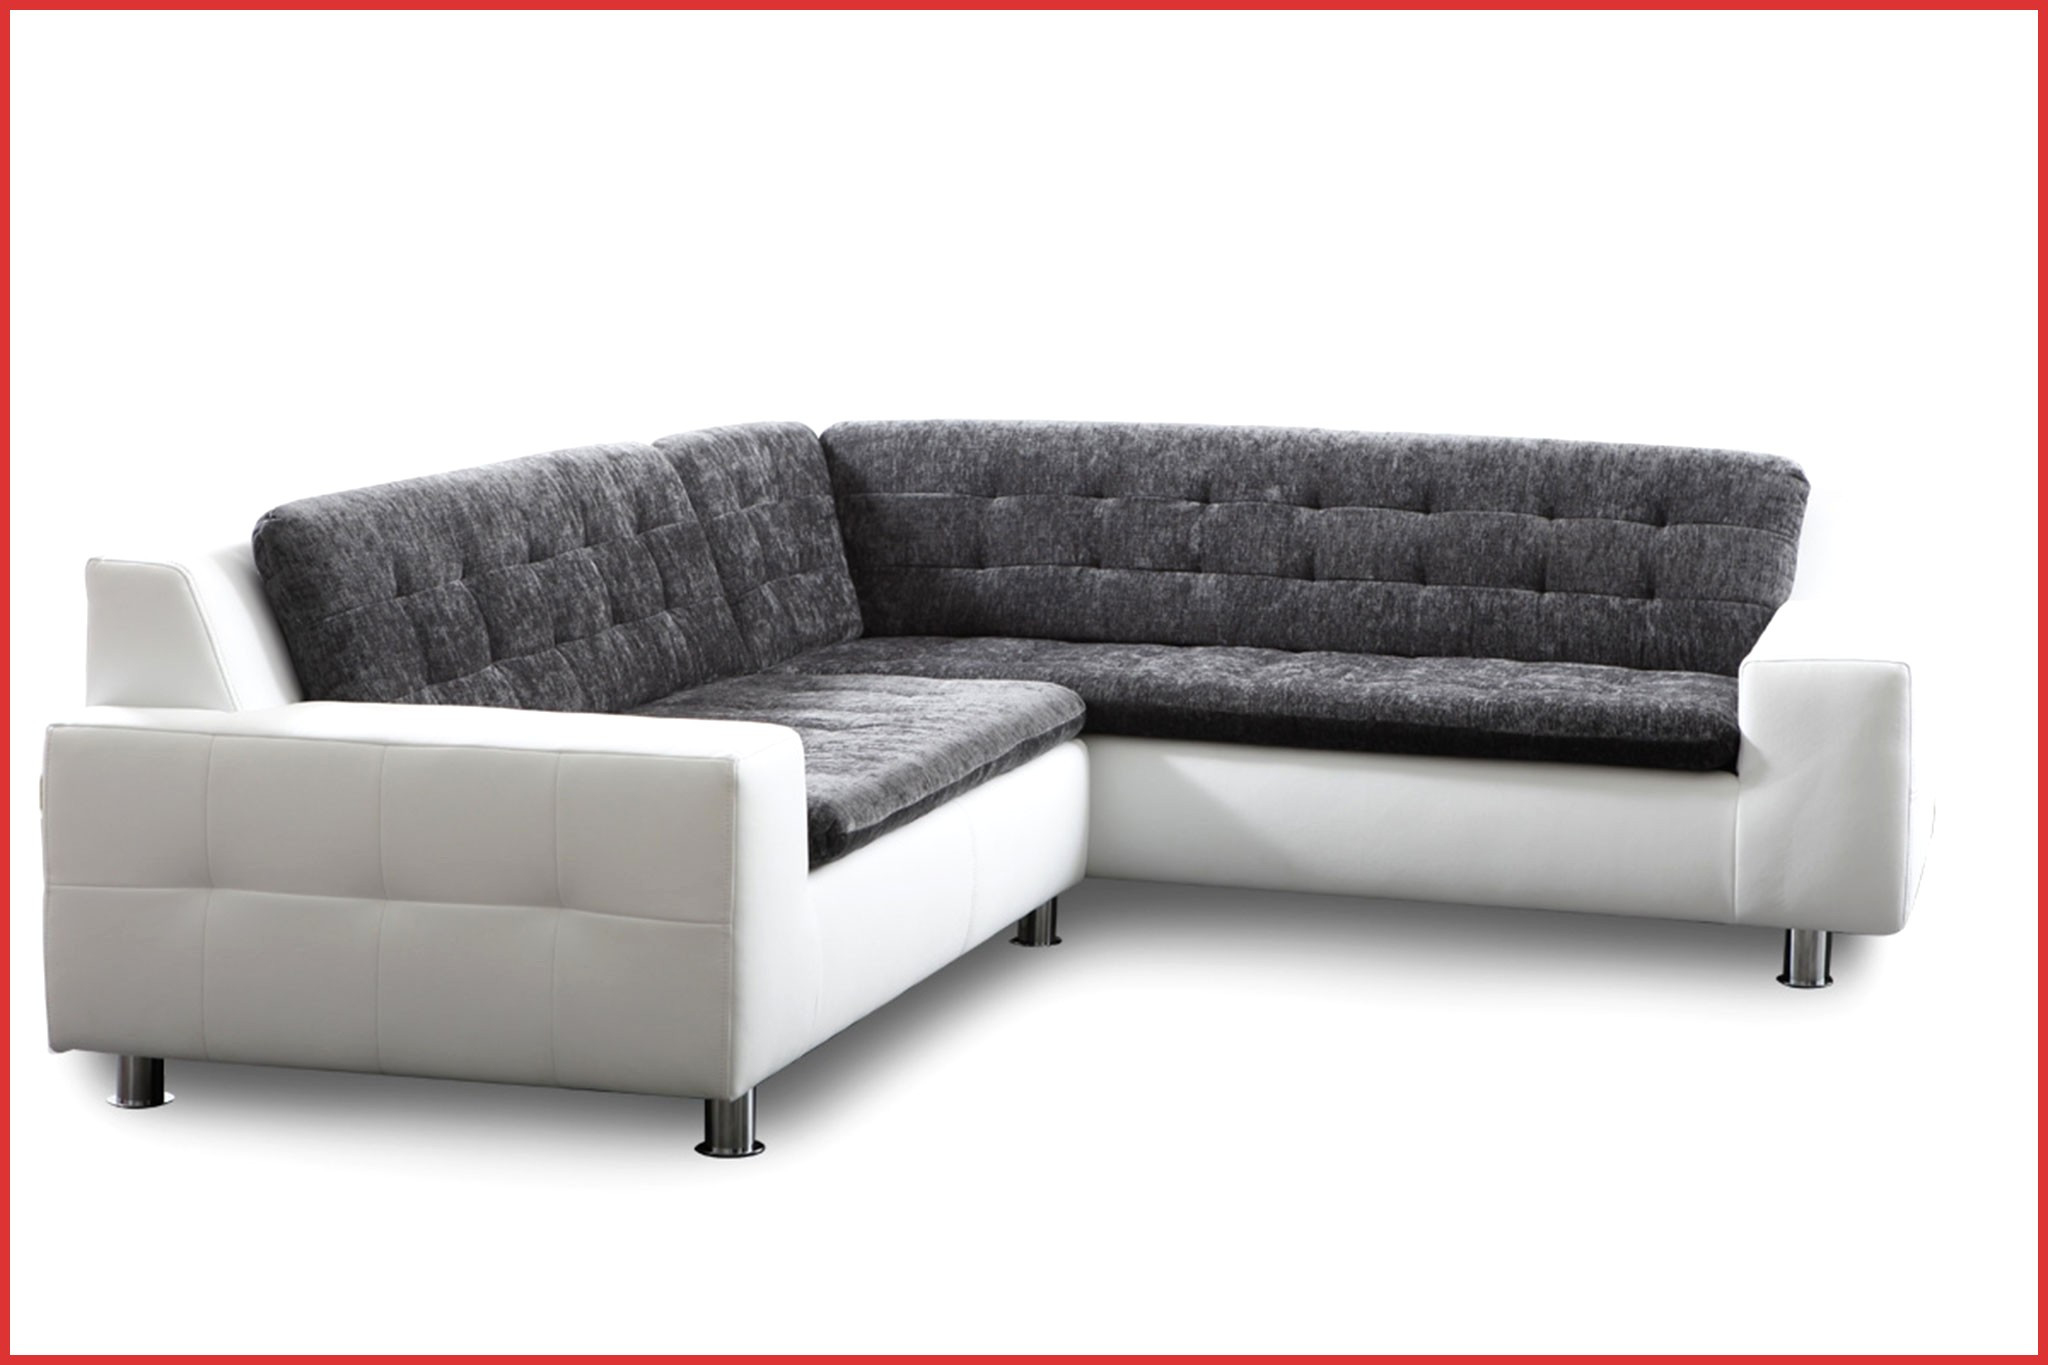 Canapé Lit Pas Cher Fly Luxe Stock Canap Convertible 3 Places Conforama 33 Canape Marina Luxe Lit 28